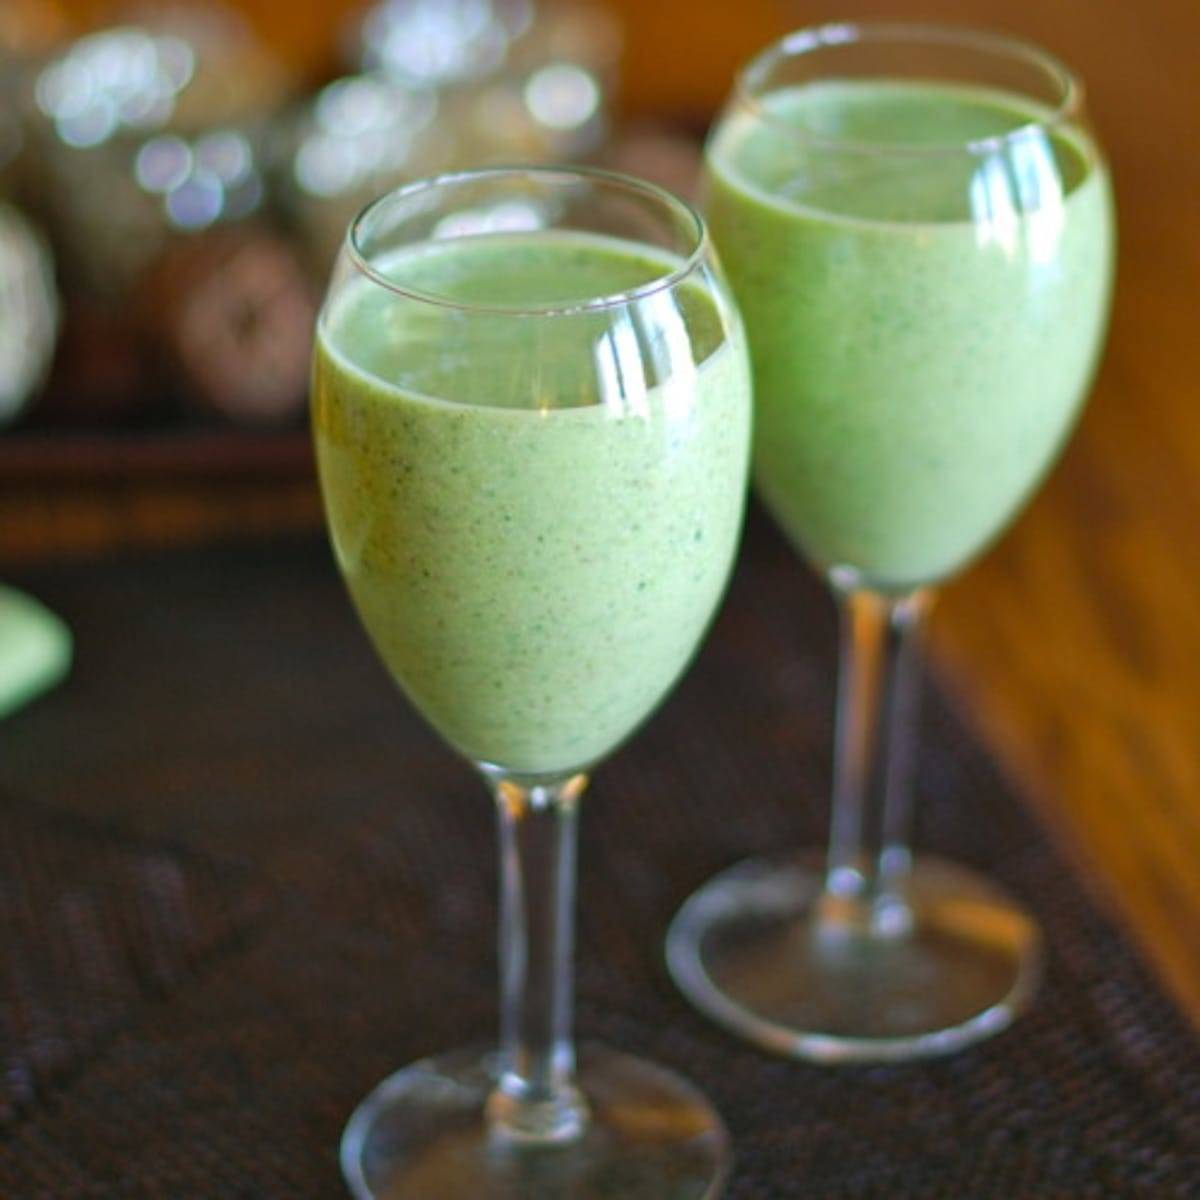 Two green monster smoothies in glasses.